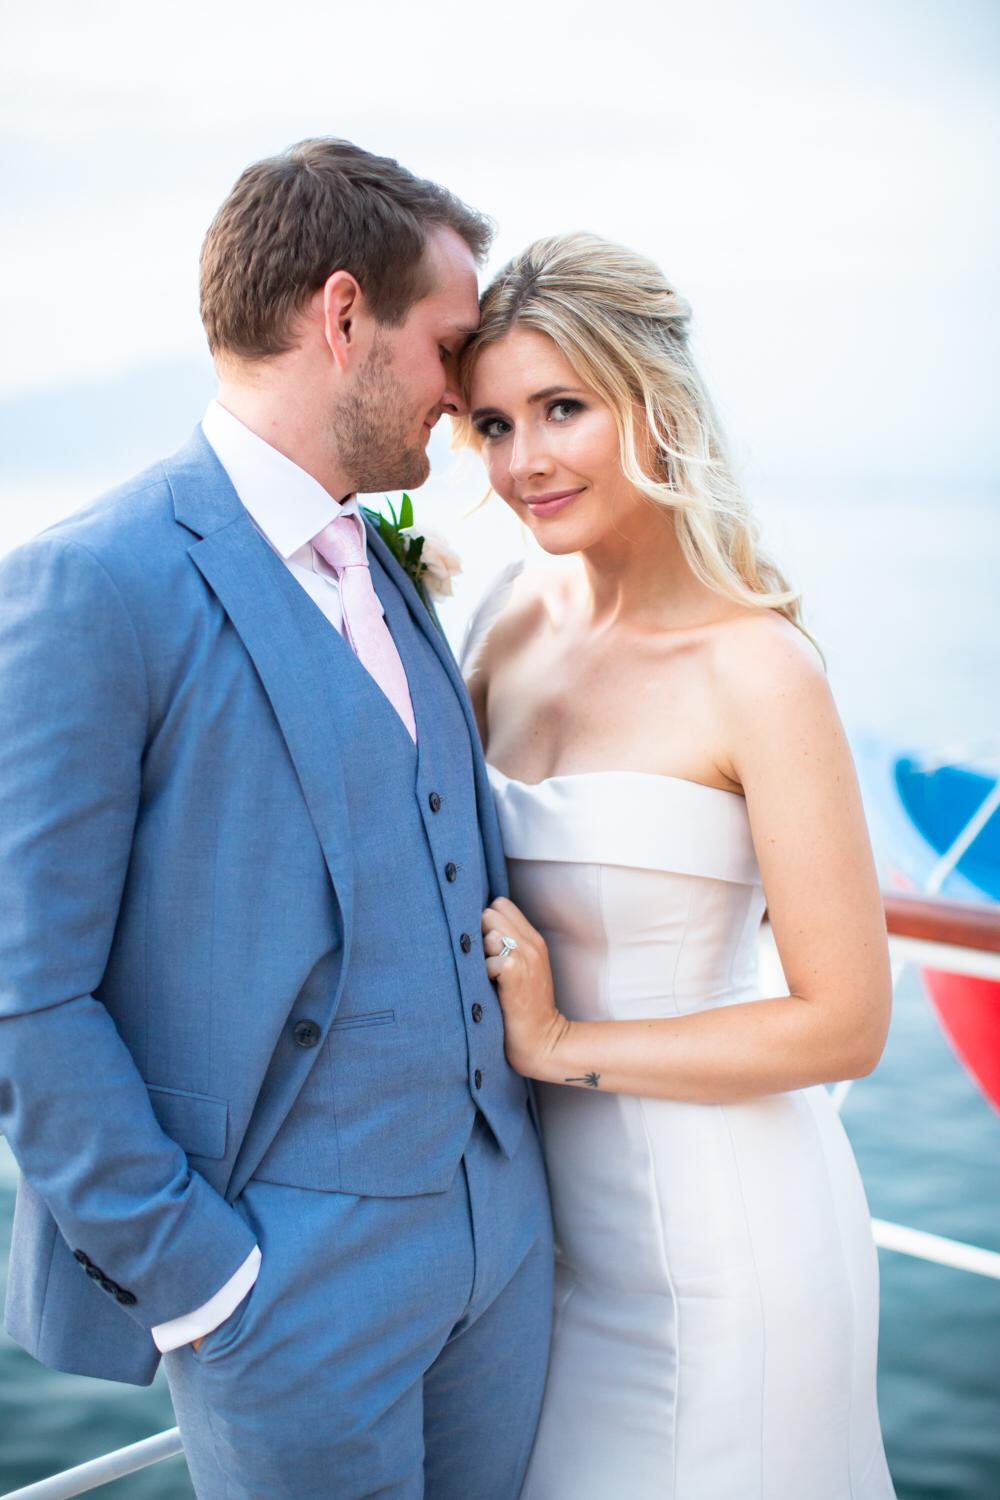 Lizzie & Ally, July 2019 - When we settled on a destination wedding in Sorrento, Italy we decided that we'd need some help sourcing everything for our big day. That's when we hired Emily!My new husband & I both agreed that it was the best money we spent, as the comfort of knowing that everything is taken care of by an expert is priceless; we were able to entertain our guests without worrying about having to organise them. For anyone who is sceptical about investing in a wedding planner, we found that we actually saved money overall from the recommendations that Emily gave us… it's also a bonus to have someone fighting your corner in price negotiations with suppliers!We found Emily to be impeccably organised and budget conscious, and she had our best interest in mind at all times. She has a great eye for detail which meant that all of the vendors she recommended were of a high standard (while in budget) and her styling made the room look stunning on the day. You know your wedding planner's good when you even have guests commenting on how brilliant she is!From remembering to take my hotel room key when I left to walk down the aisle and making the wedding rings appear at the altar after the groom had forgotten them, we couldn't have asked for a more helpful wedding planner.Thank you for giving us the smoothest wedding planning experience and our perfect wedding day! Lizzie & Ally xxxx